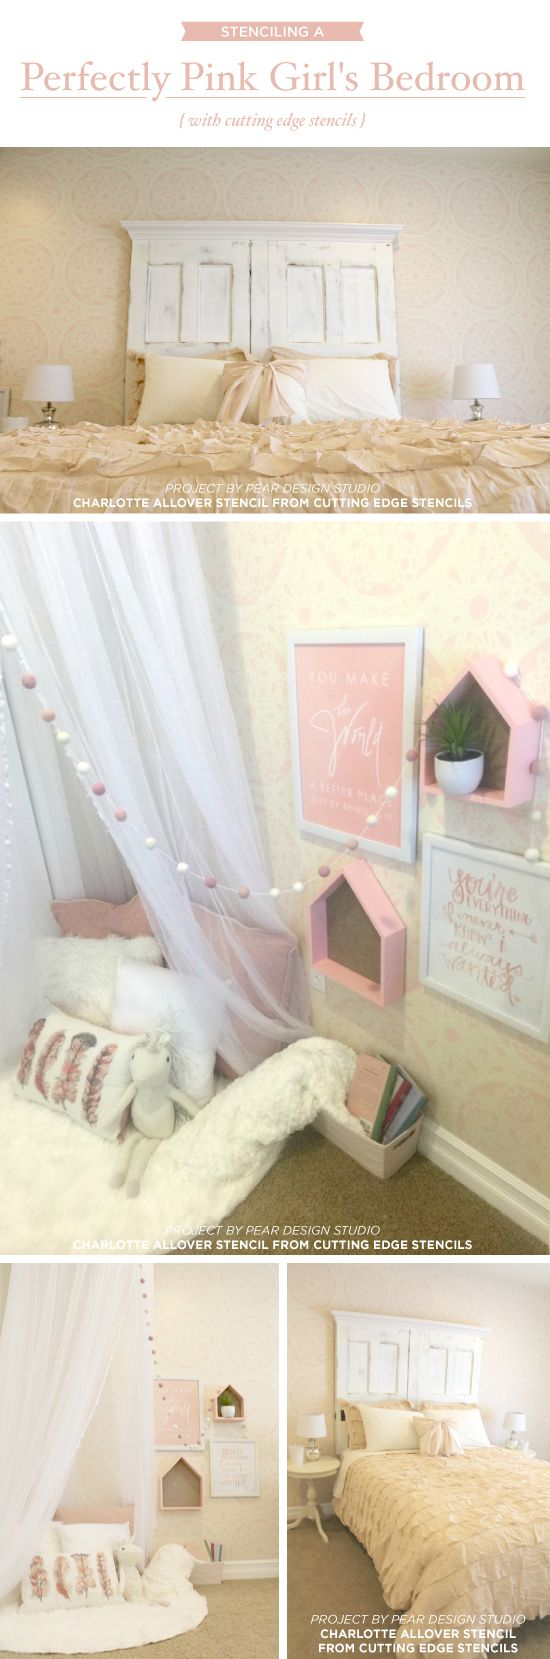 264 best Color Me: Pink images on Pinterest | Wall stenciling ...